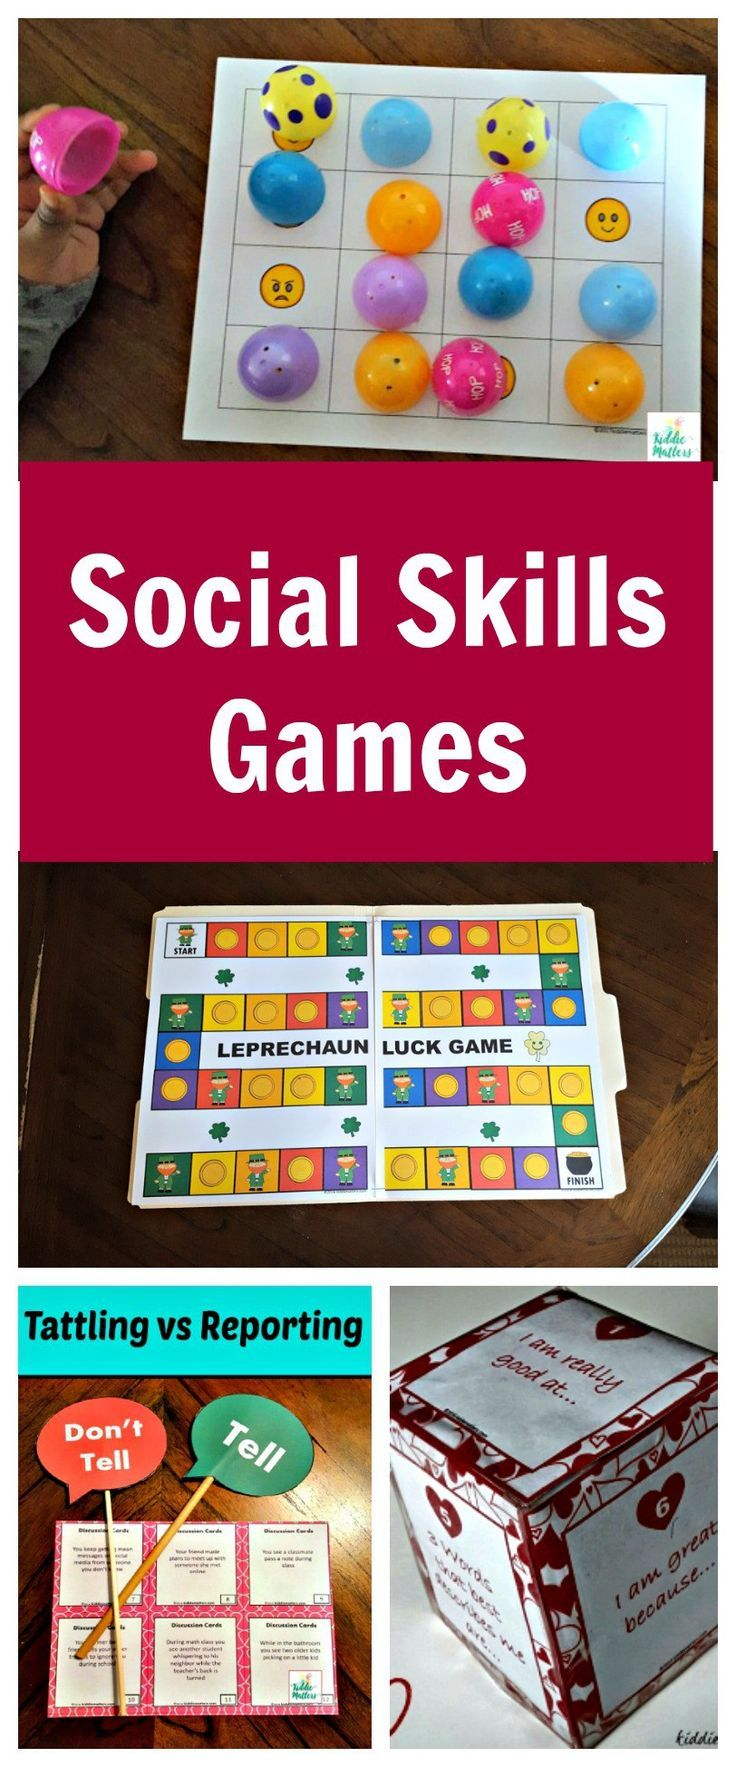 social skills games for teaching social skills such as perspective taking, communication, labeling feelings, problem solving and more.